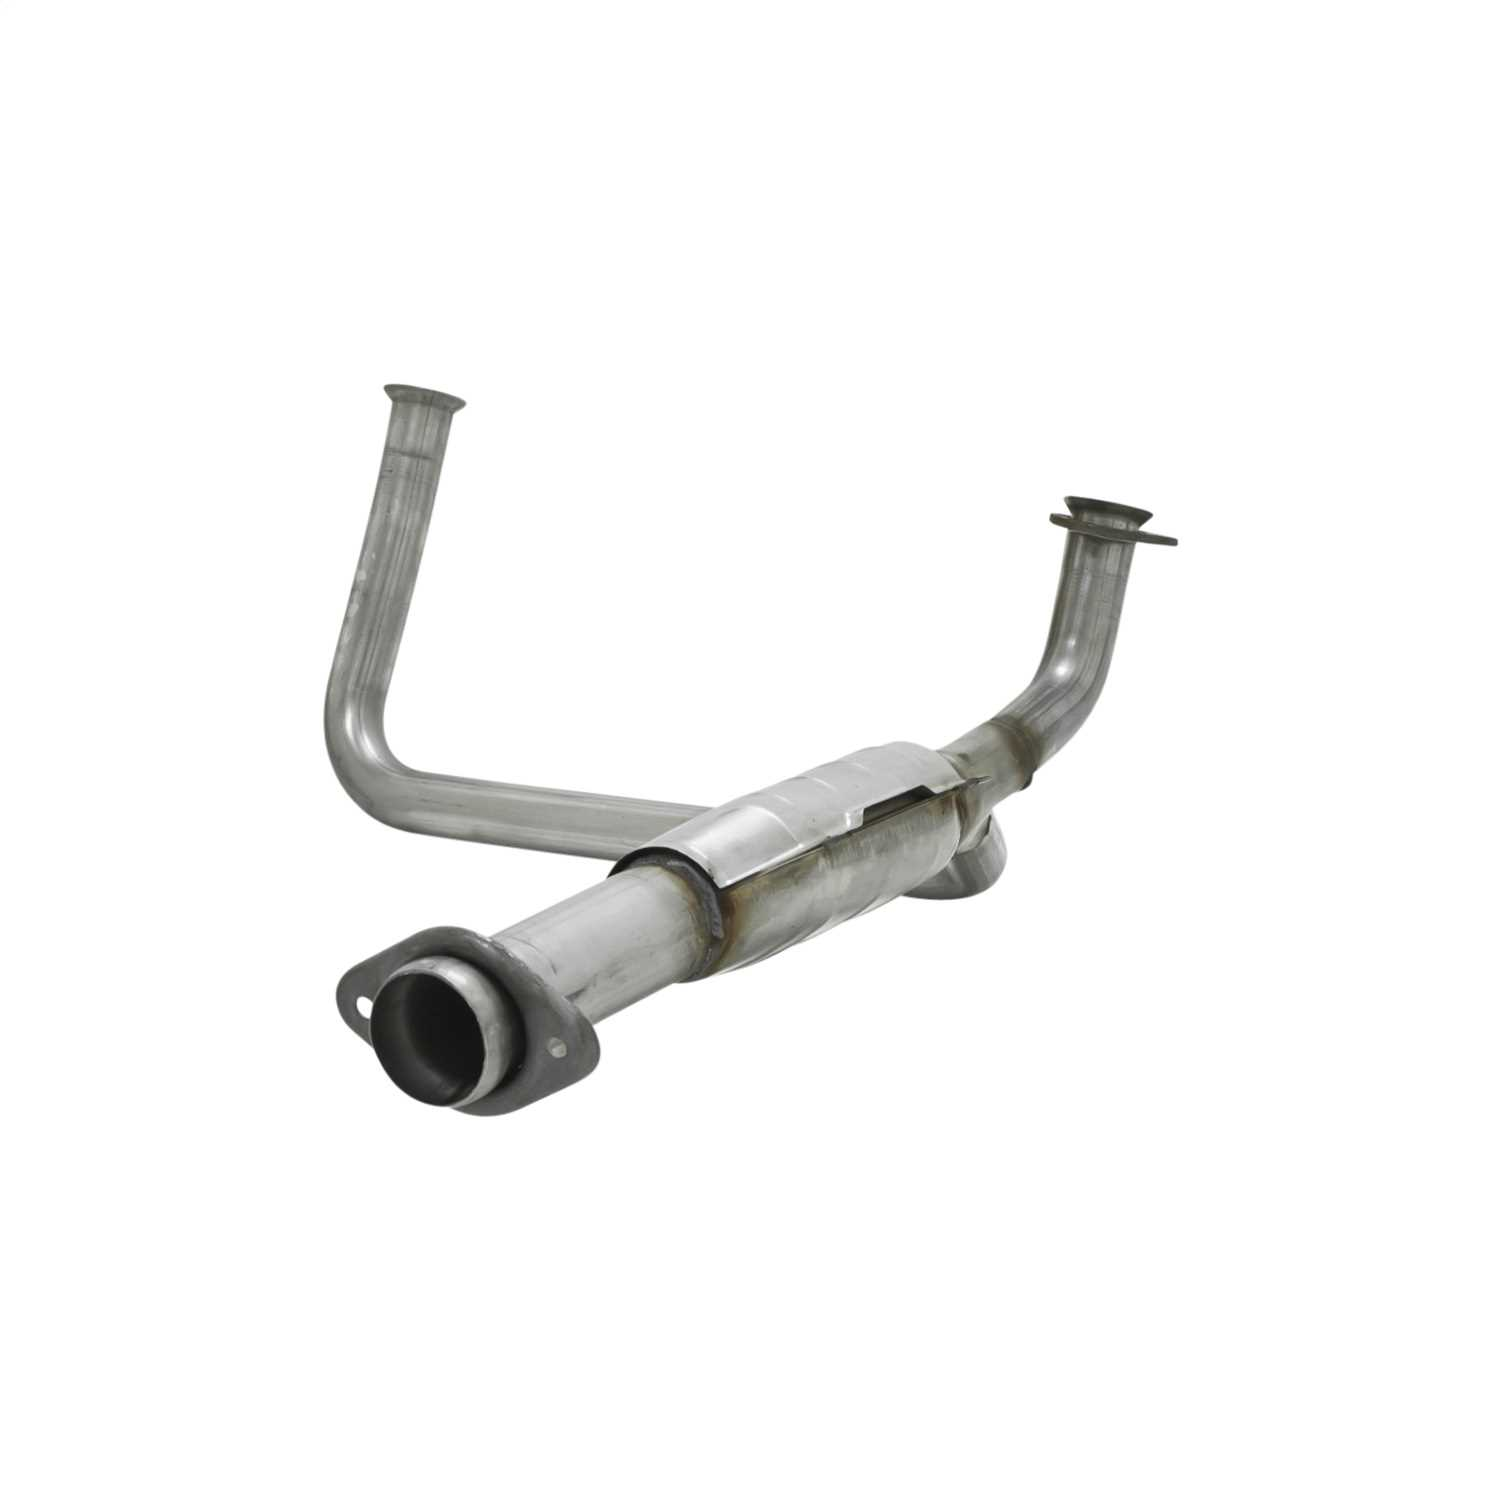 2010021 Flowmaster 49 State Catalytic Converters Direct Fit Catalytic Converter